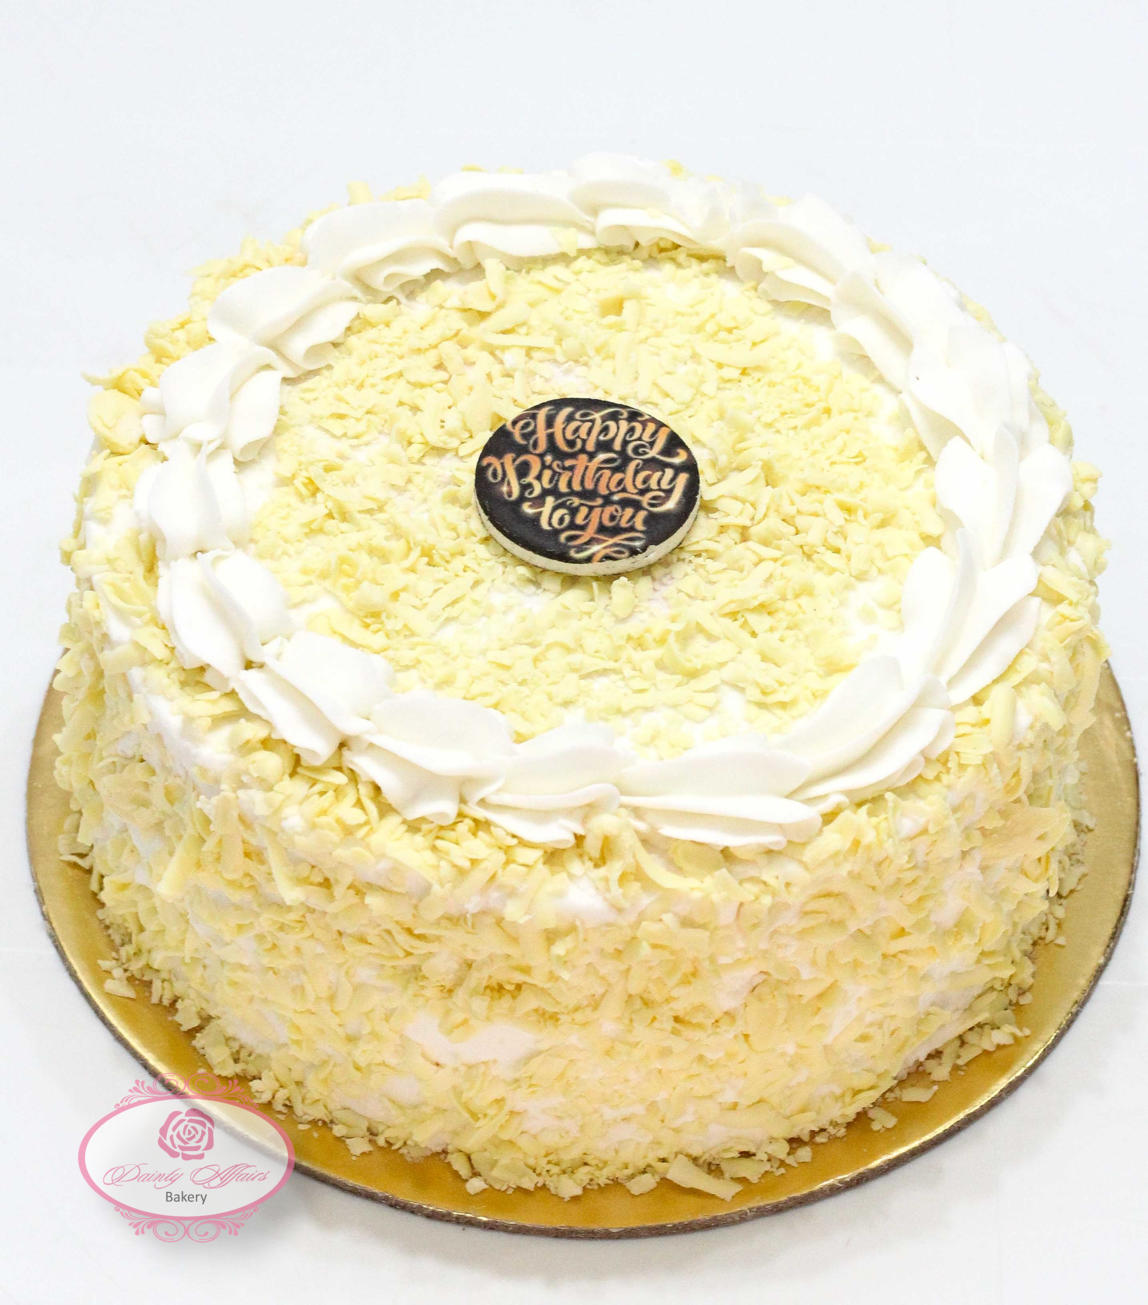 Cake Red Velvet White Chocolate : Red Velvet White Chocolate cake   Dainty Affairs Bakery ...